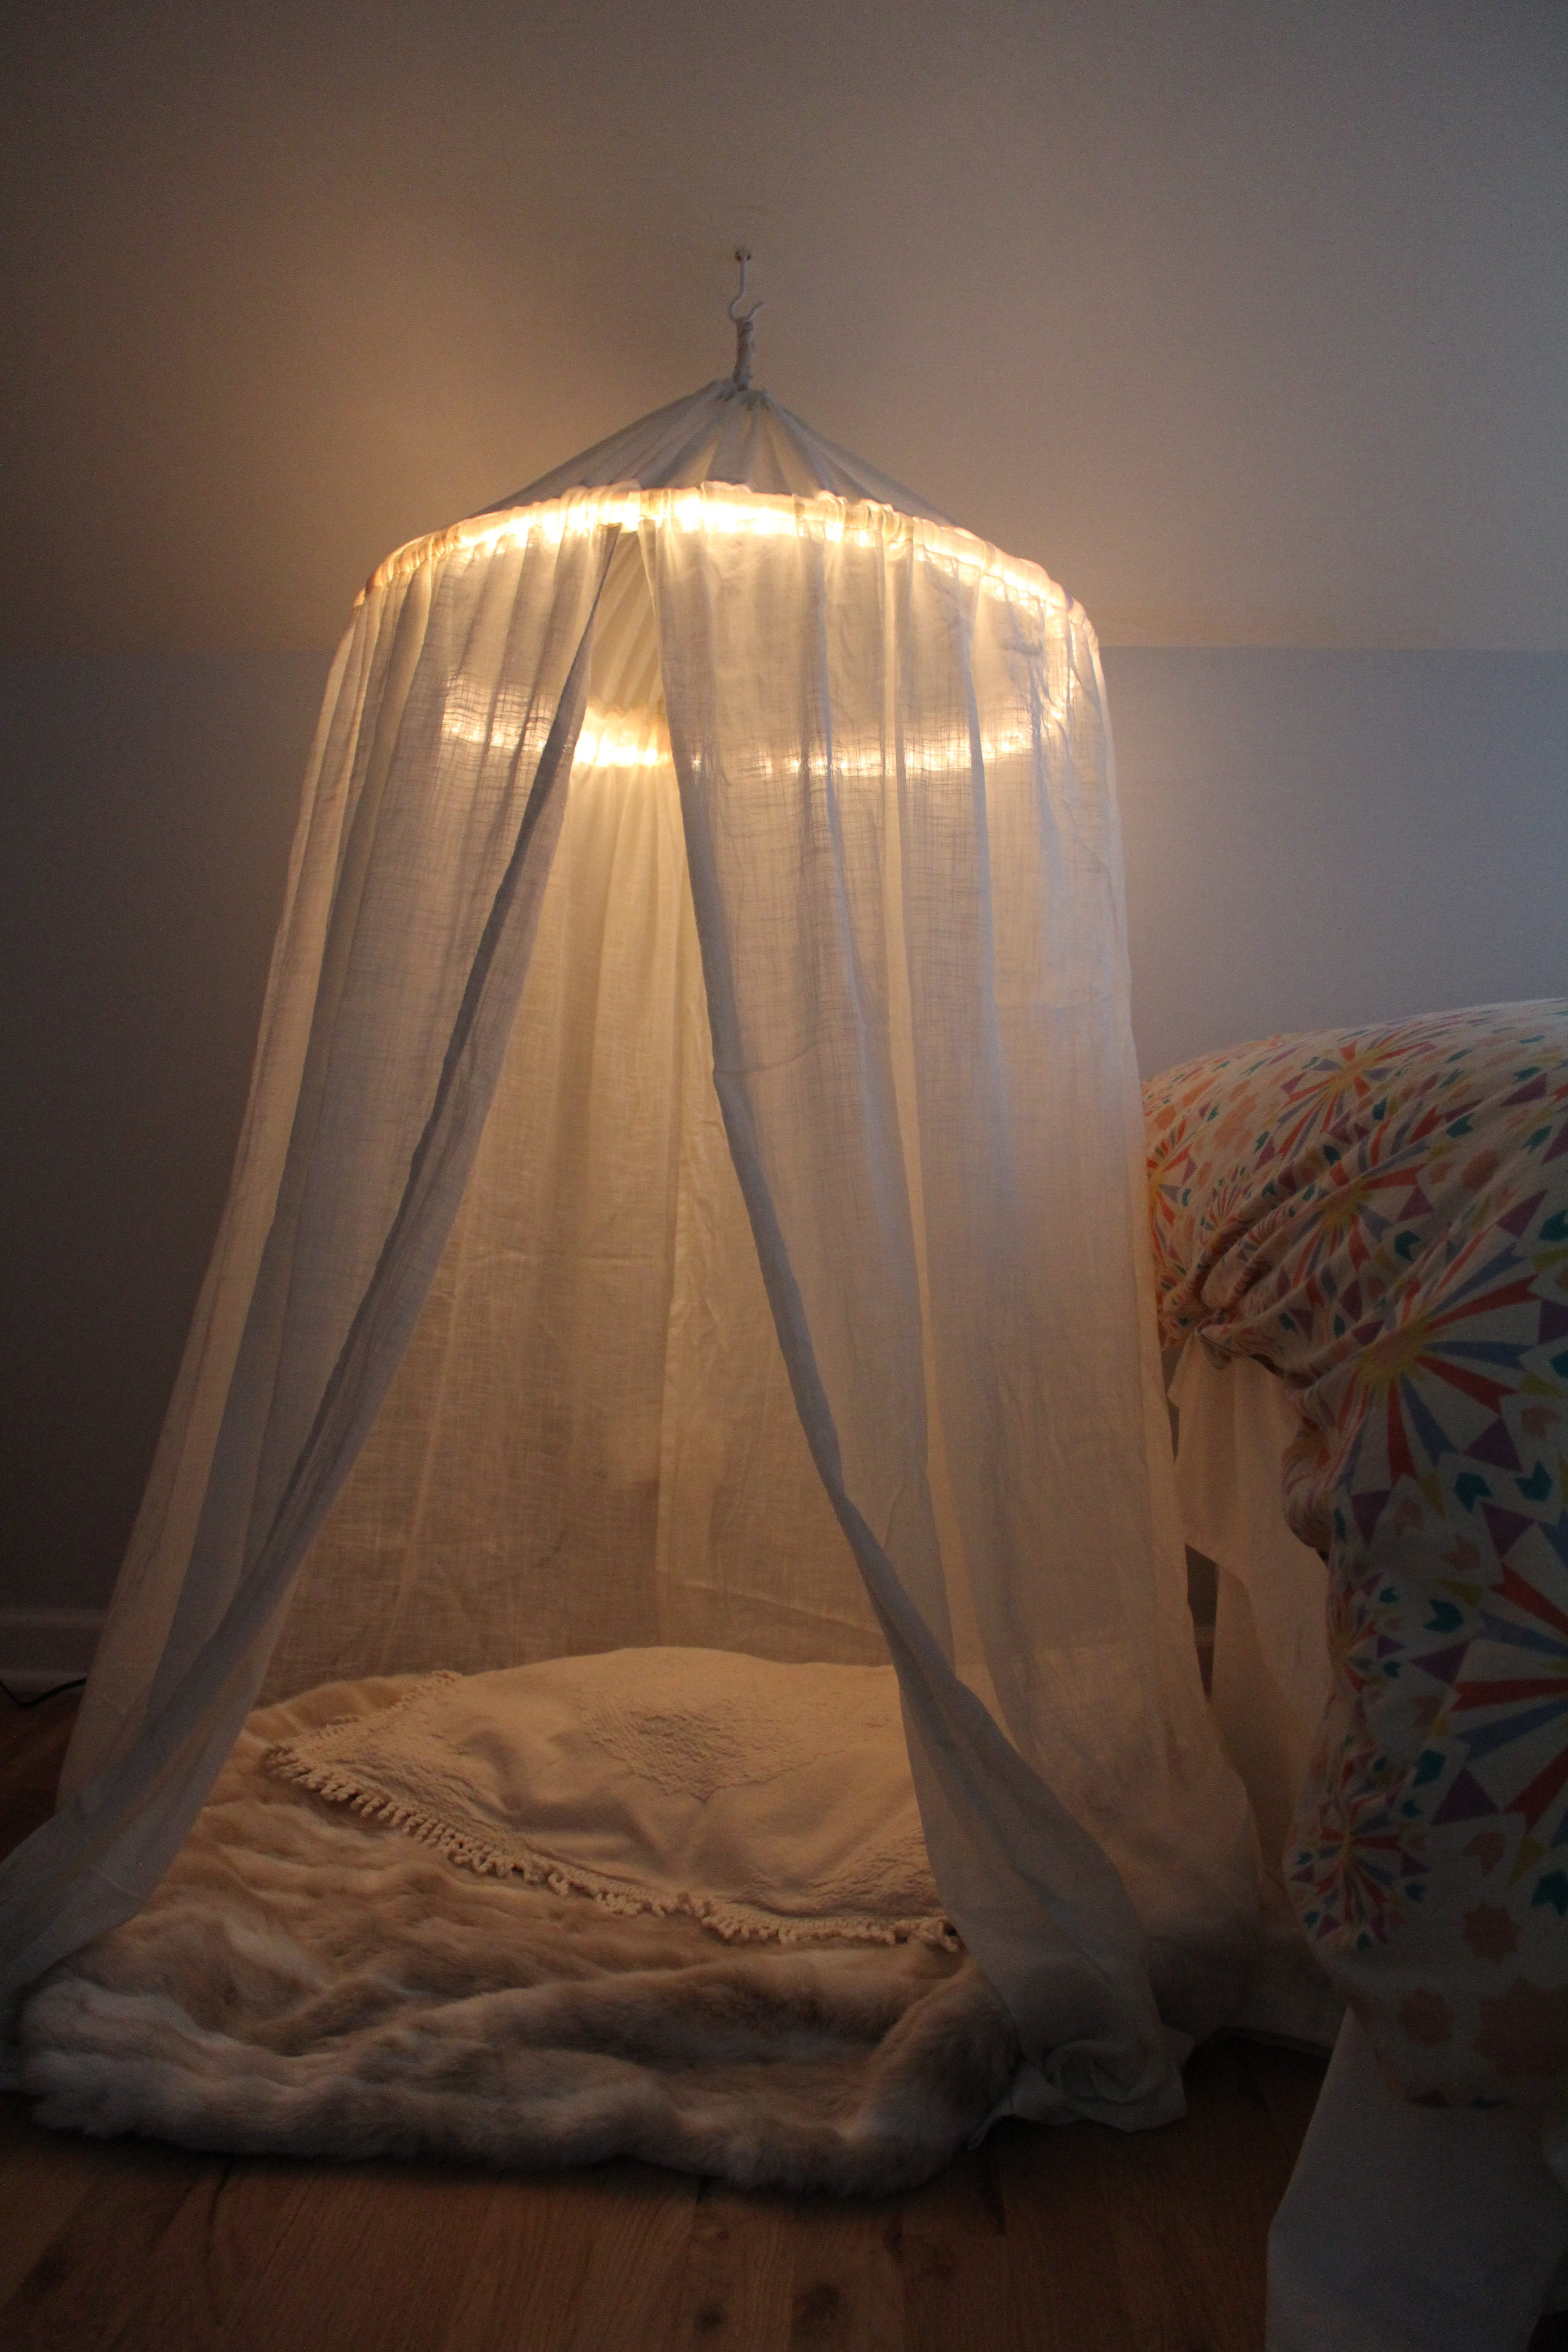 Best ideas about DIY Bed Canopy With Lights . Save or Pin diy canopy handmaidtales Now.